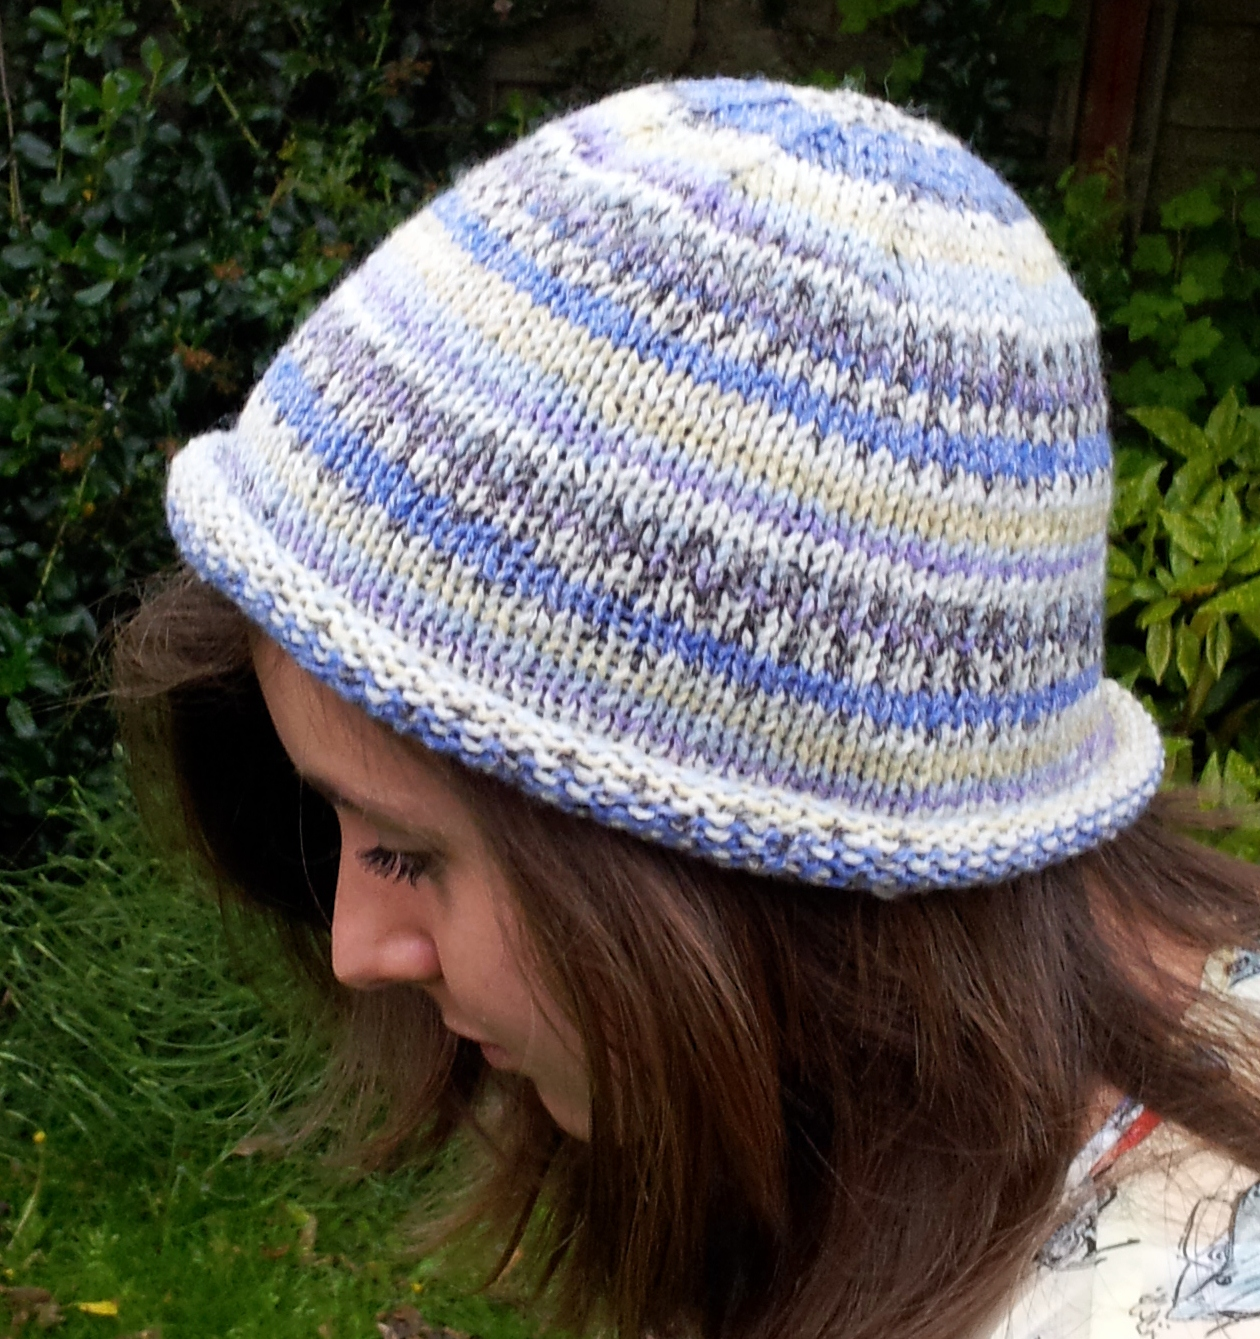 Easy Hat Knitting Patterns : Knitted Rolled Brim Beanie Hat   Free beginners pattern ...